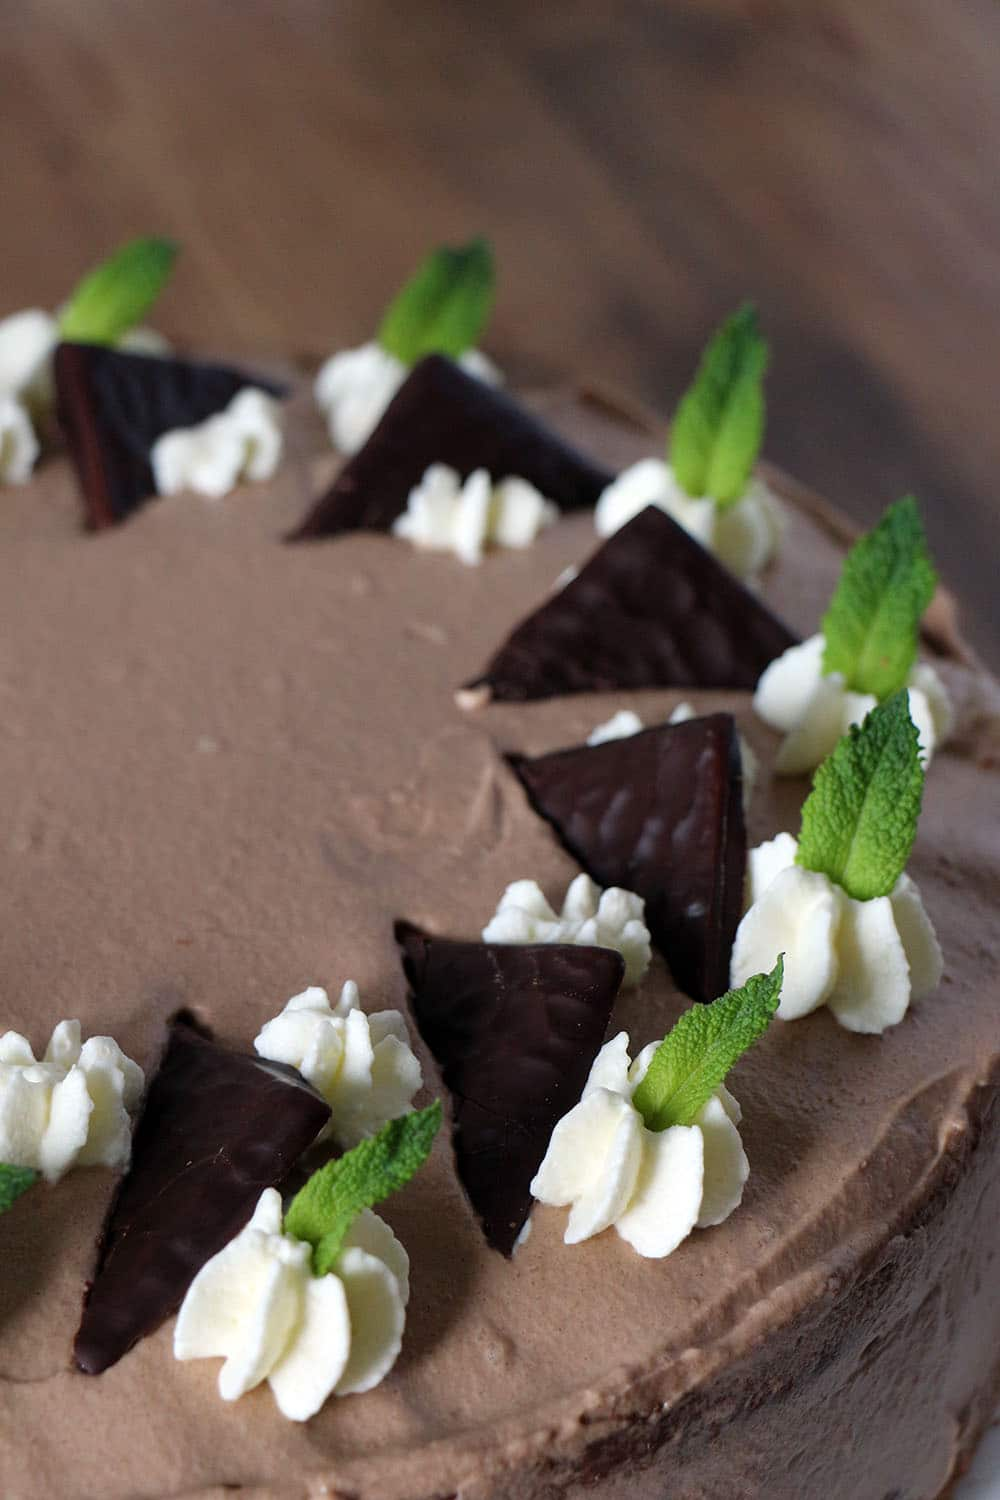 Schoko-Minz-Torte (After Eight)